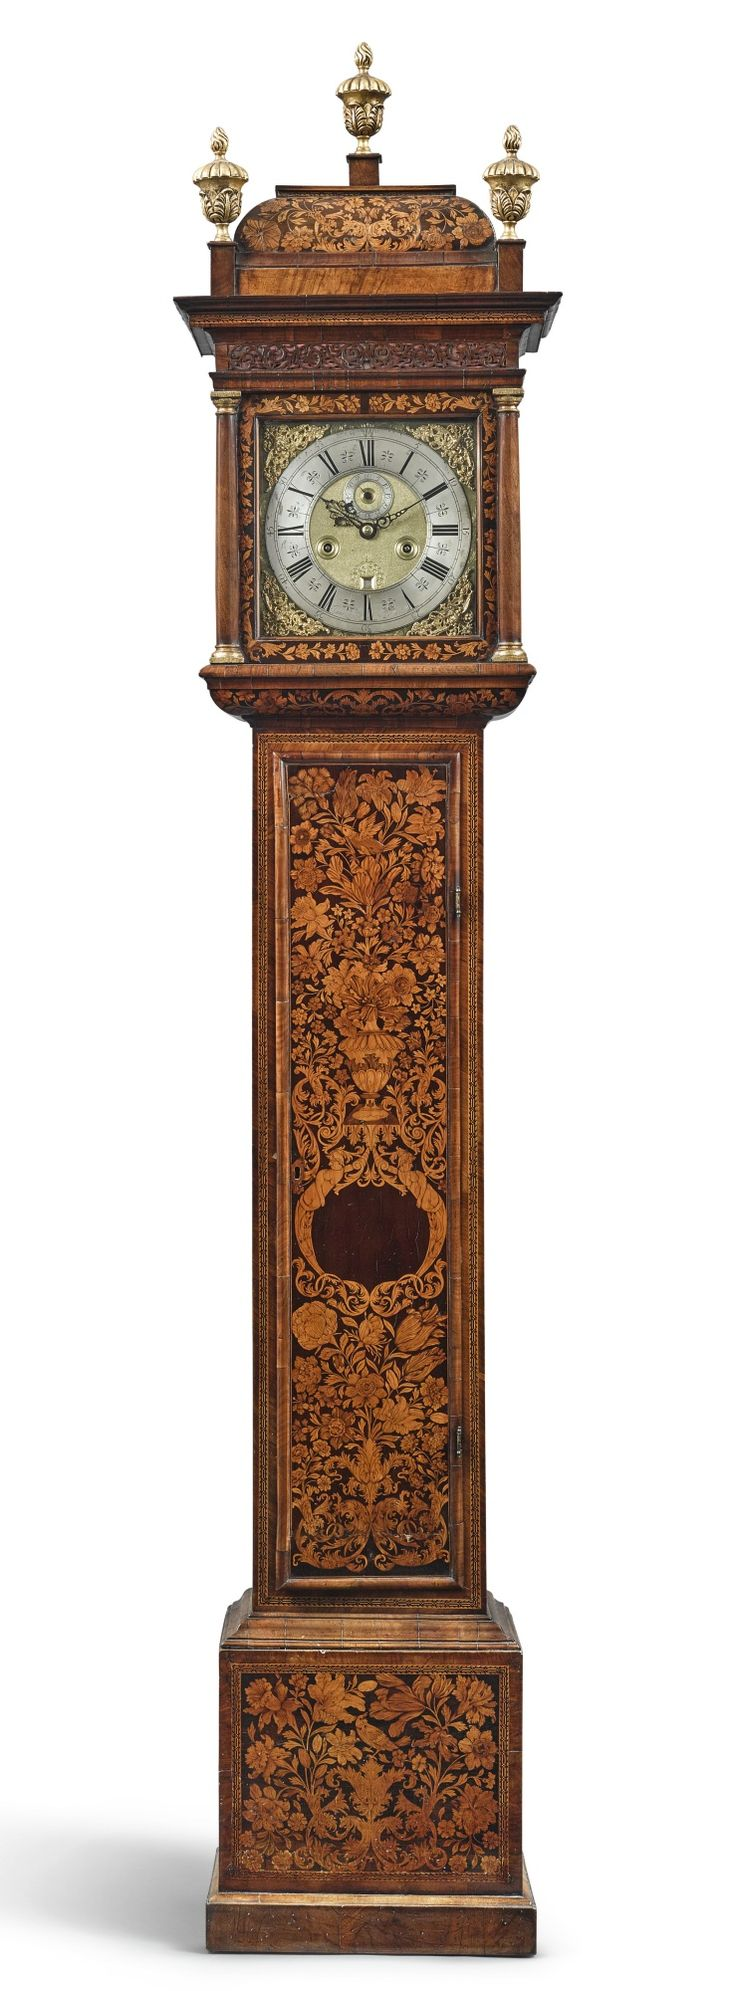 A William and Mary walnut and fruitwood marquetry longcase clock, circa 1690, dial signed Isaac Lowndes in ye Pall Mall